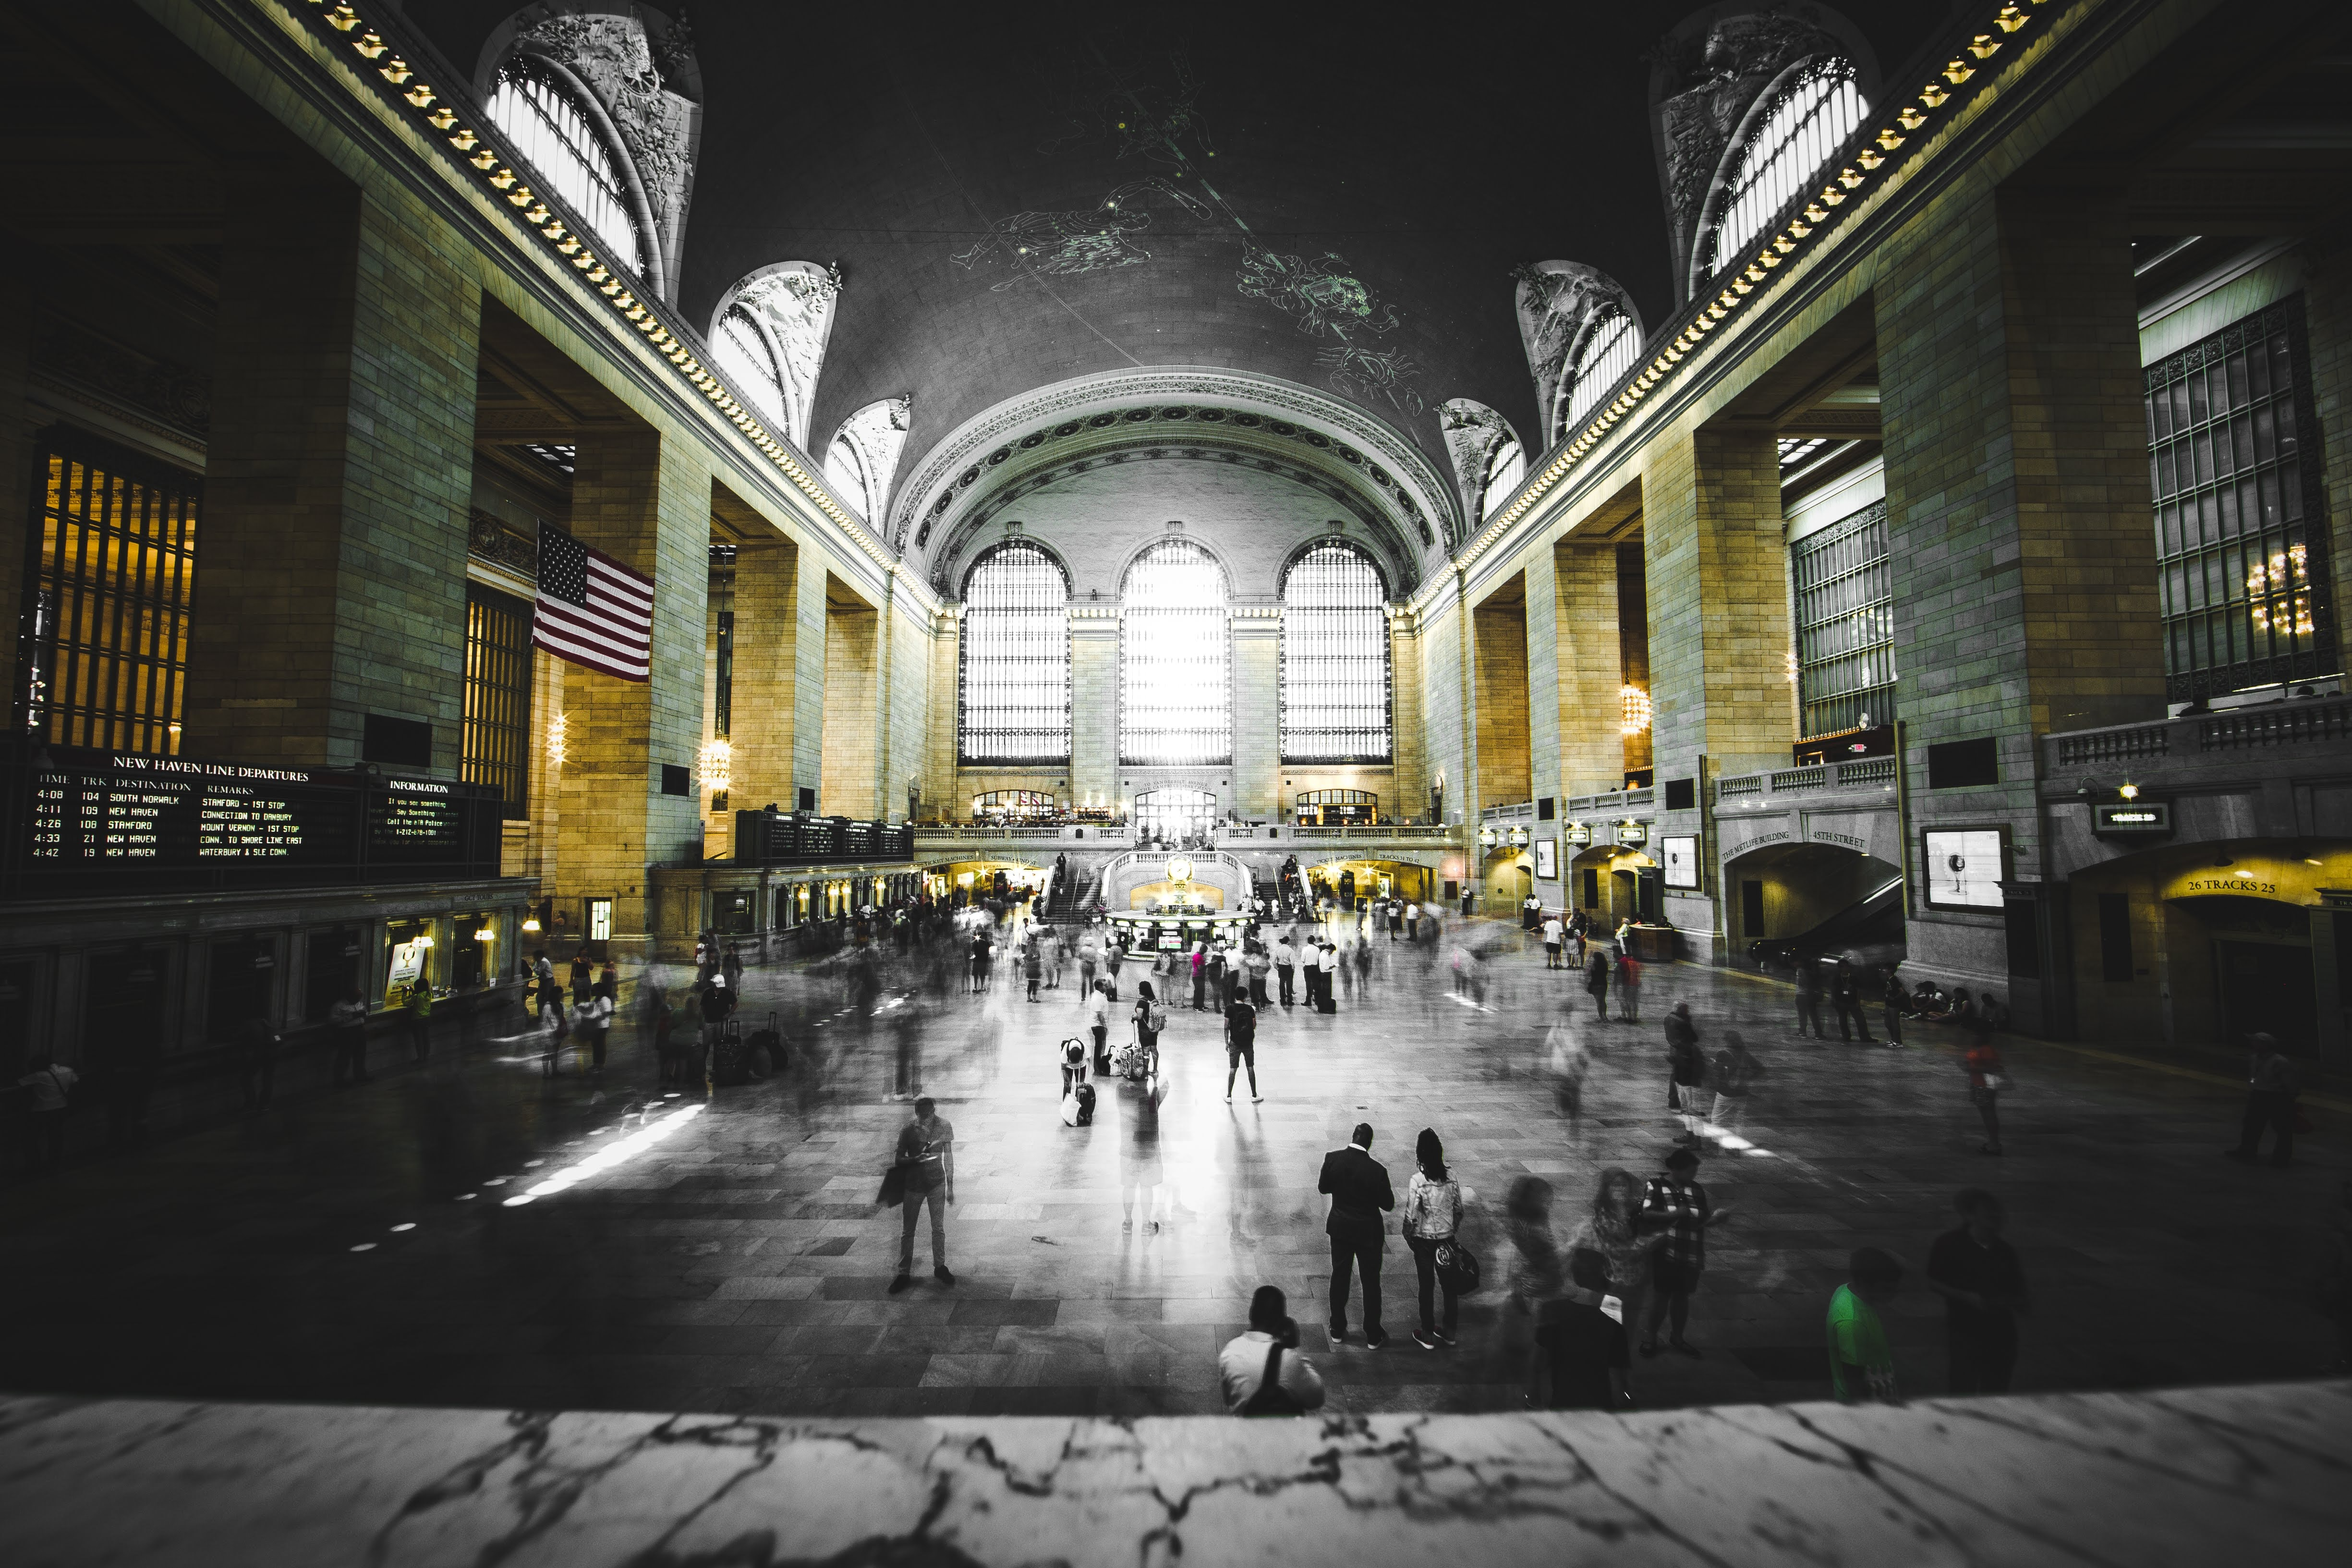 selective color photograph of people walking between structure columns